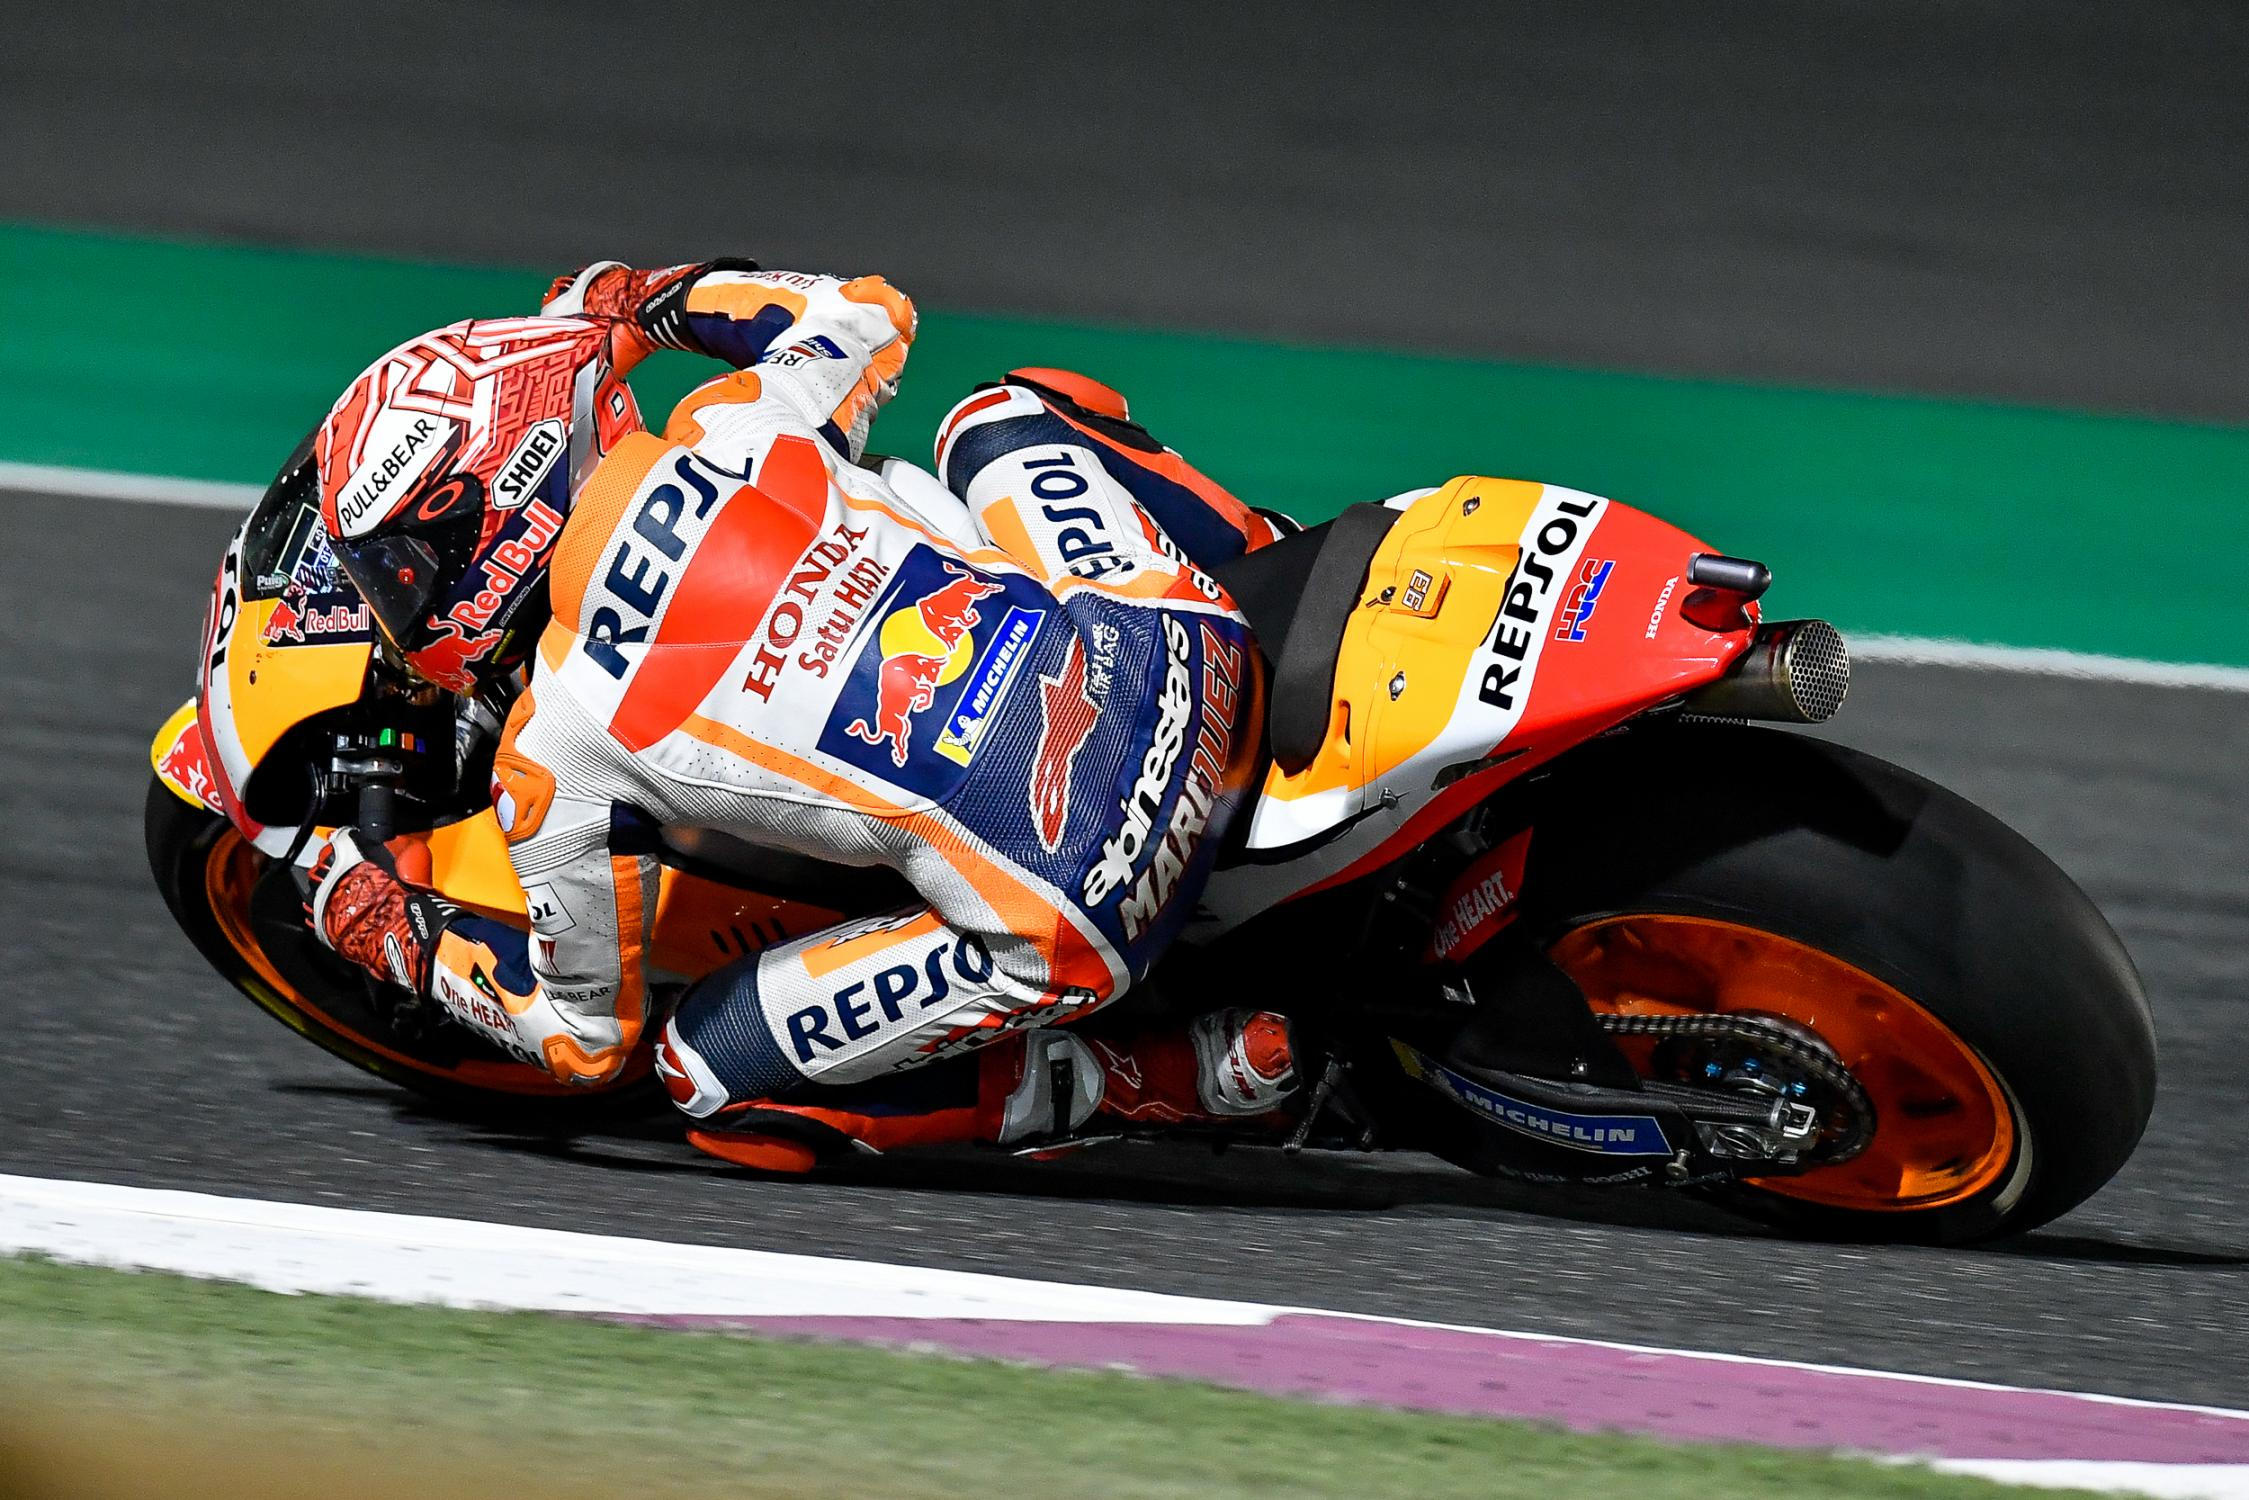 93-marc-marquez-esp_ds56354.gallery_full_top_fullscreen.jpg